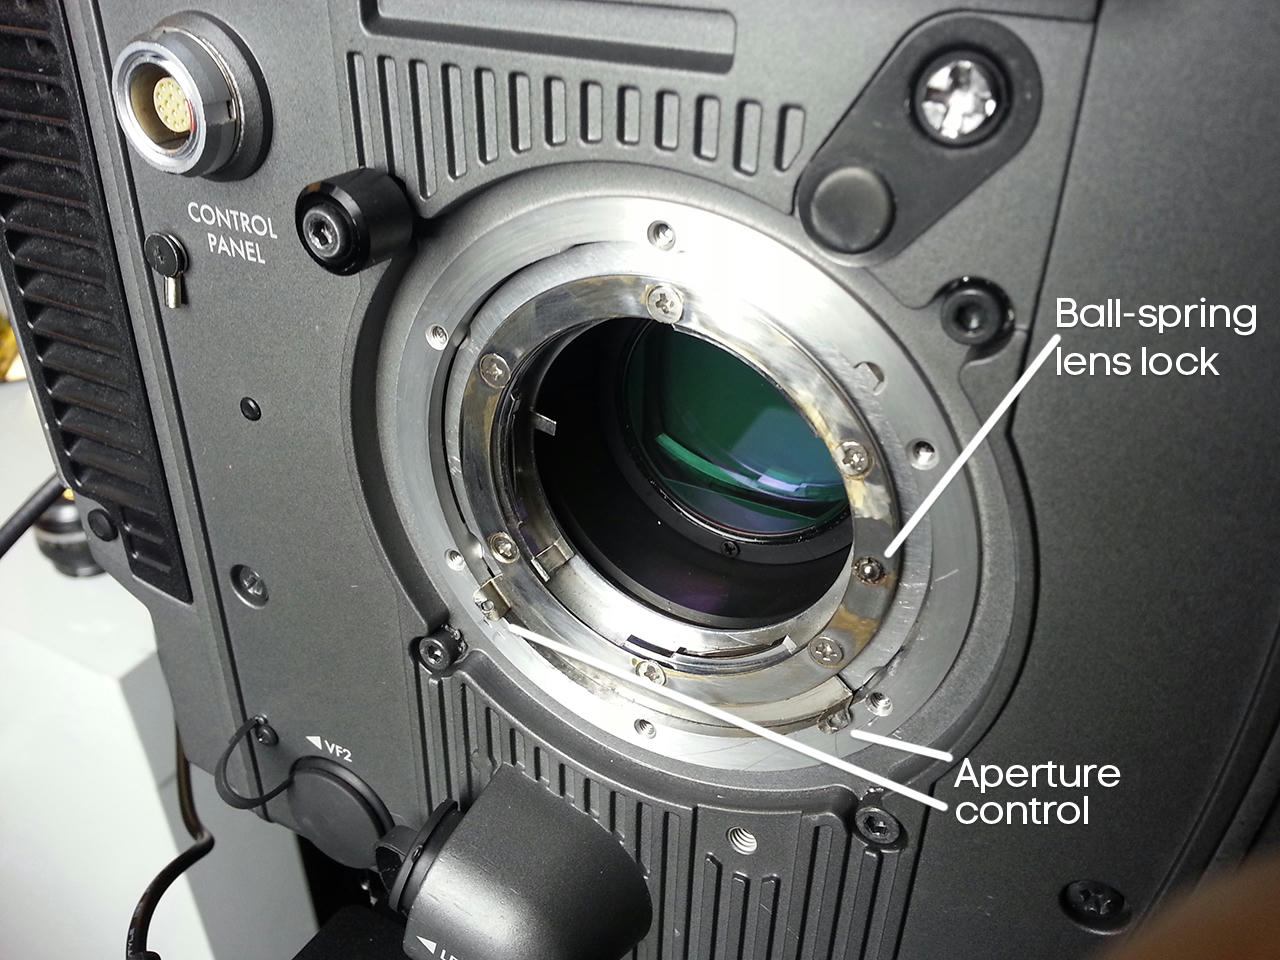 Just Got A New Camera Sony F35 Archive Page 5 Xlr Connector Wiring Diagram Http Wwwdvxusercom V6 Showthreadphp The Online Community For Filmmaking